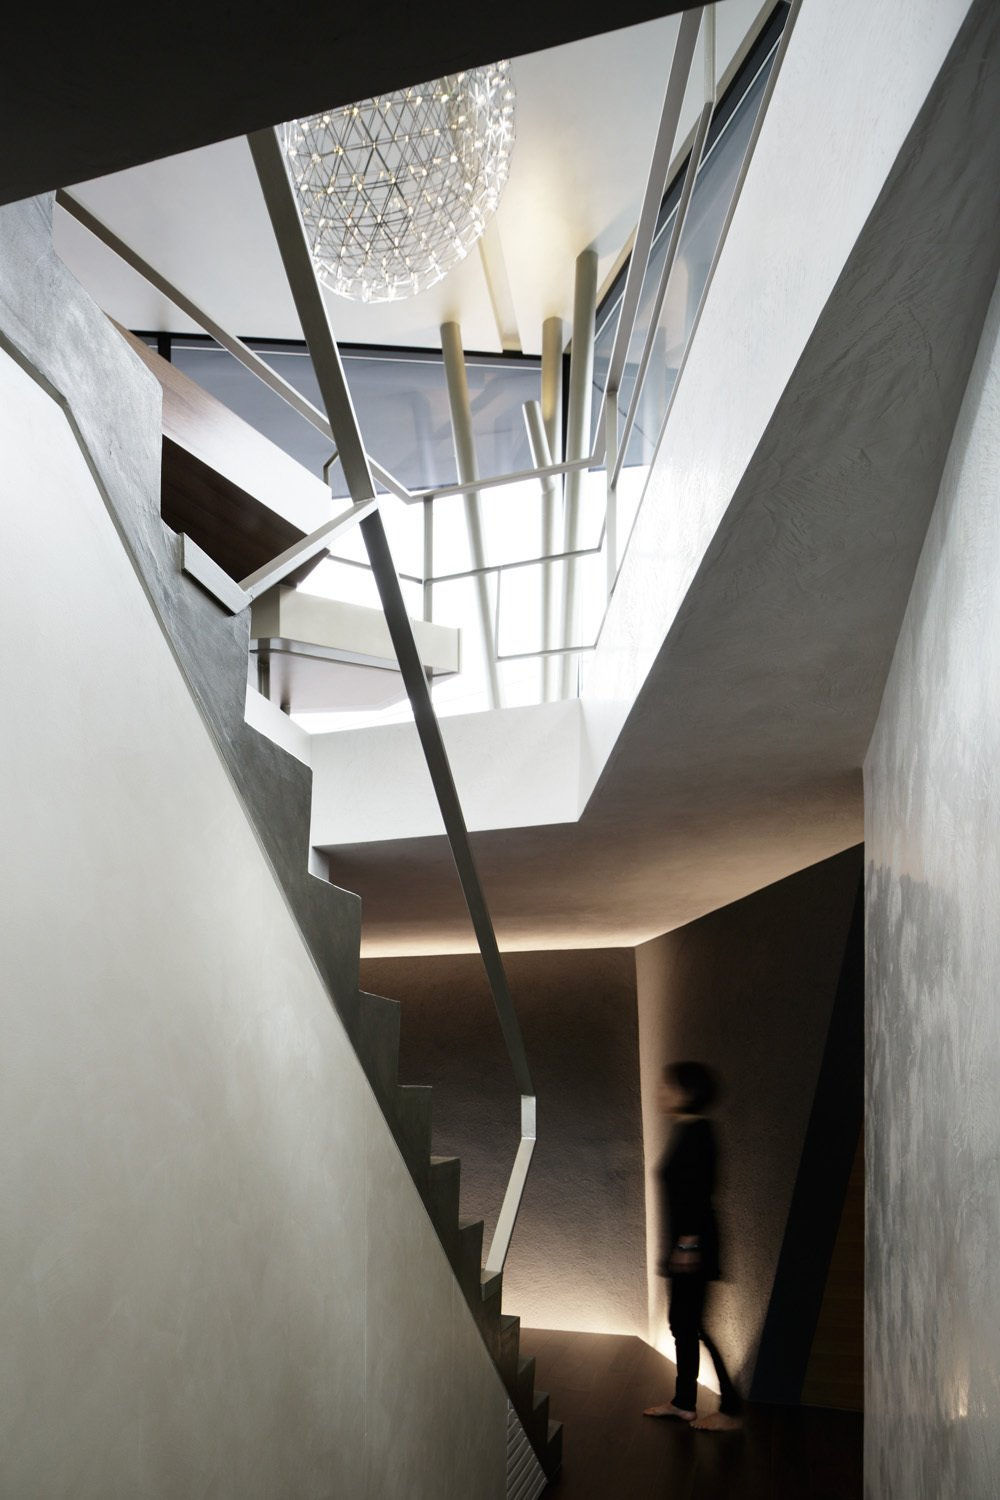 The challenge of building as angular a house on a 12 ft grade was visualizing how various vertical and horizontal planes would meet. The staircase serves as the backbone of the plan.